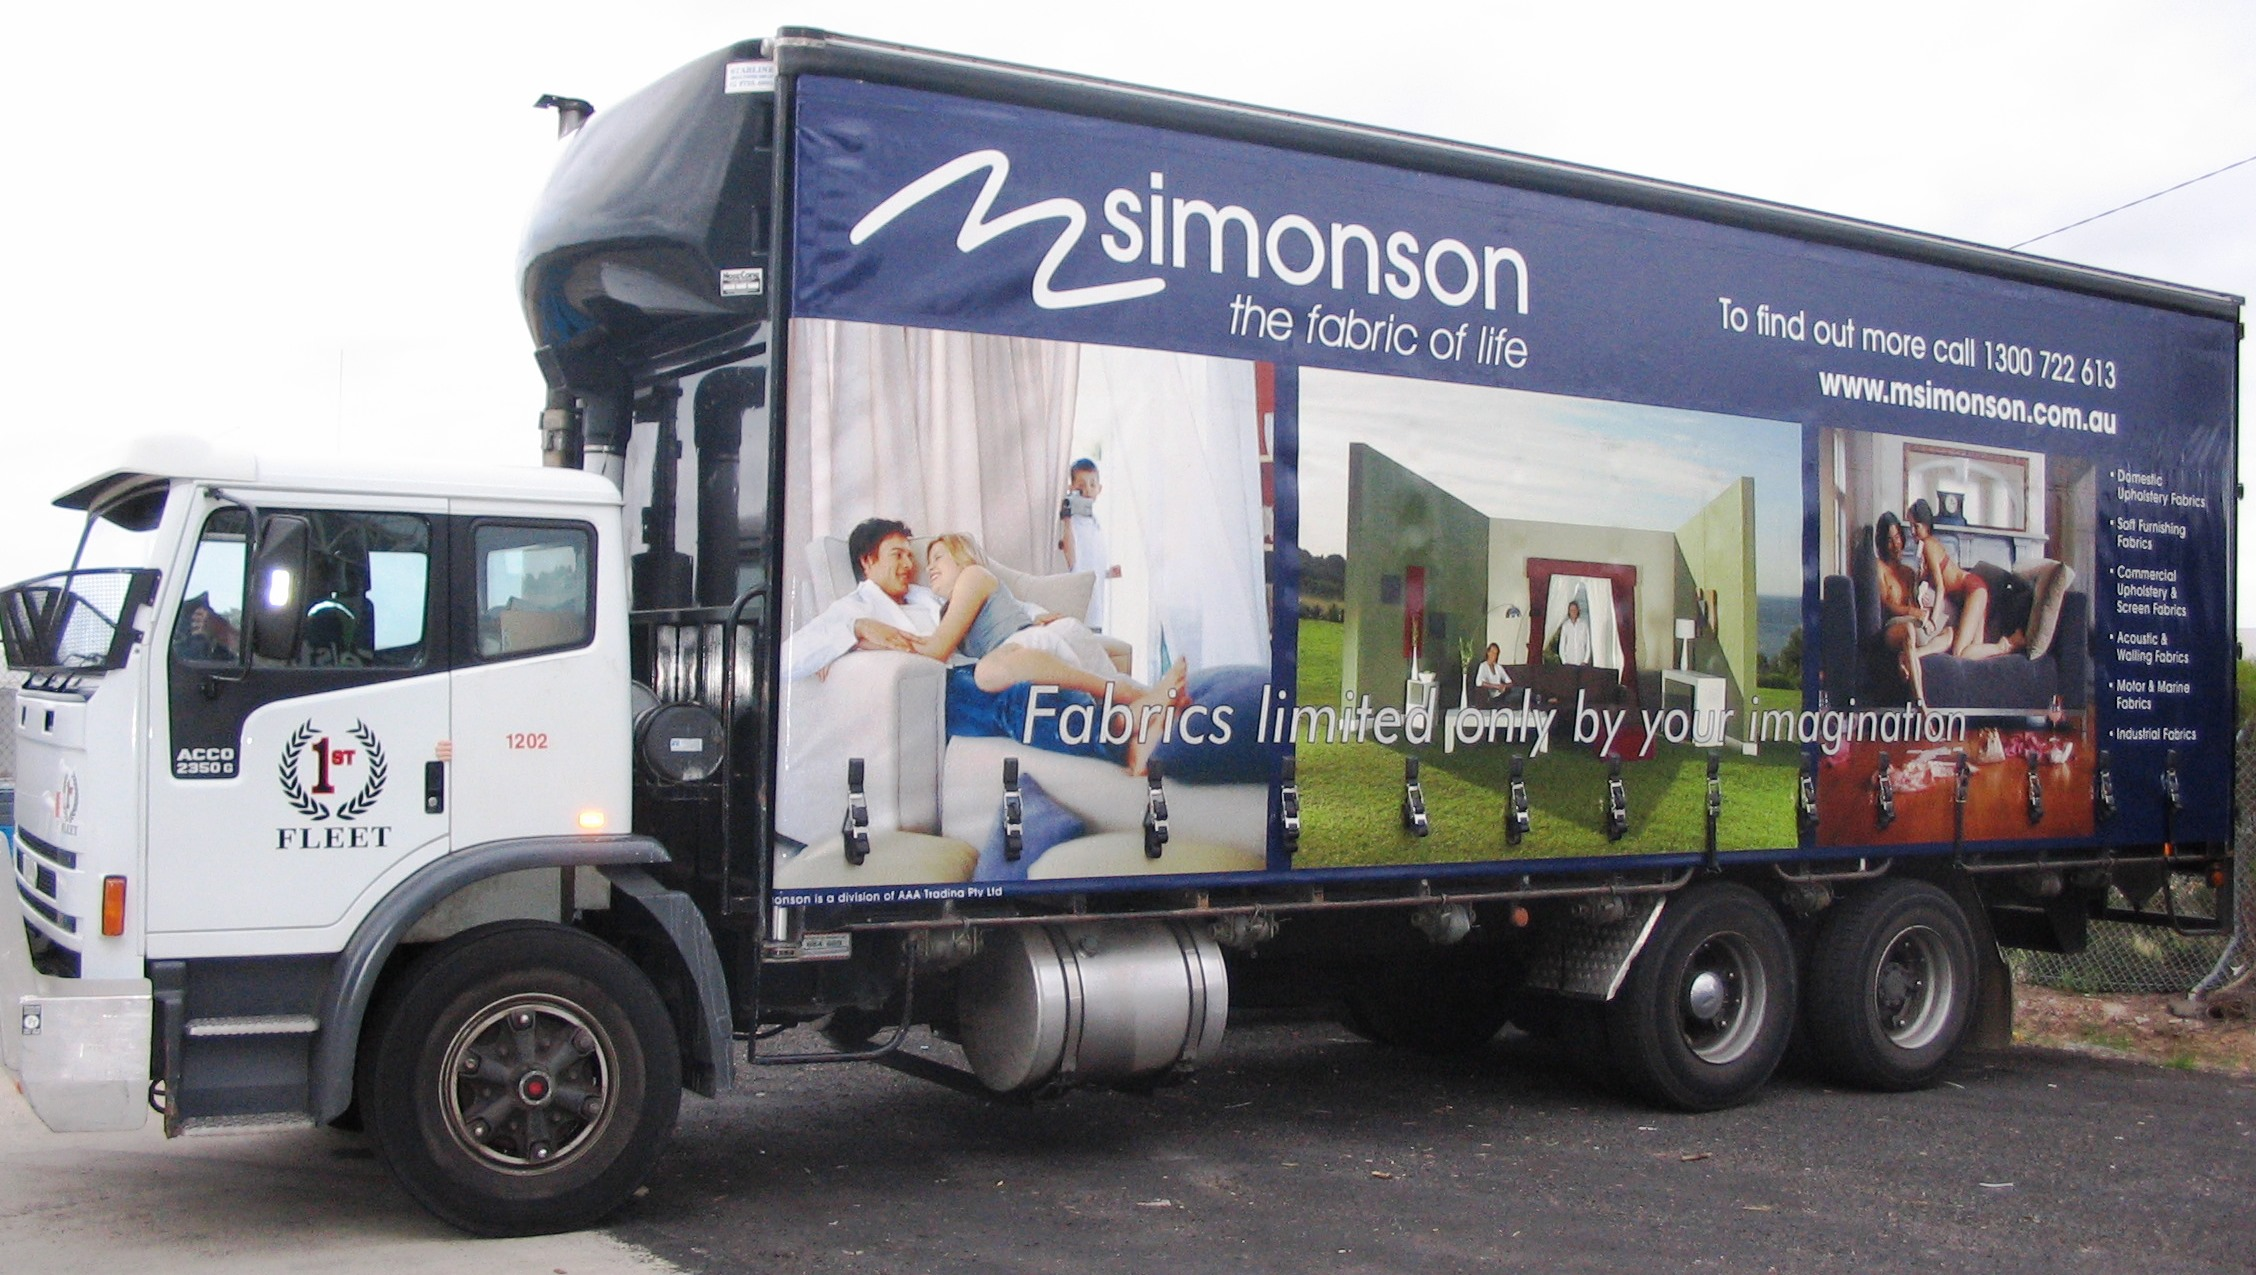 Truck advertising. Truckside Advertising. Rigid Tautliner. Simonson The Fabric of Life campaign tri-axle semitrailer. Textiles.